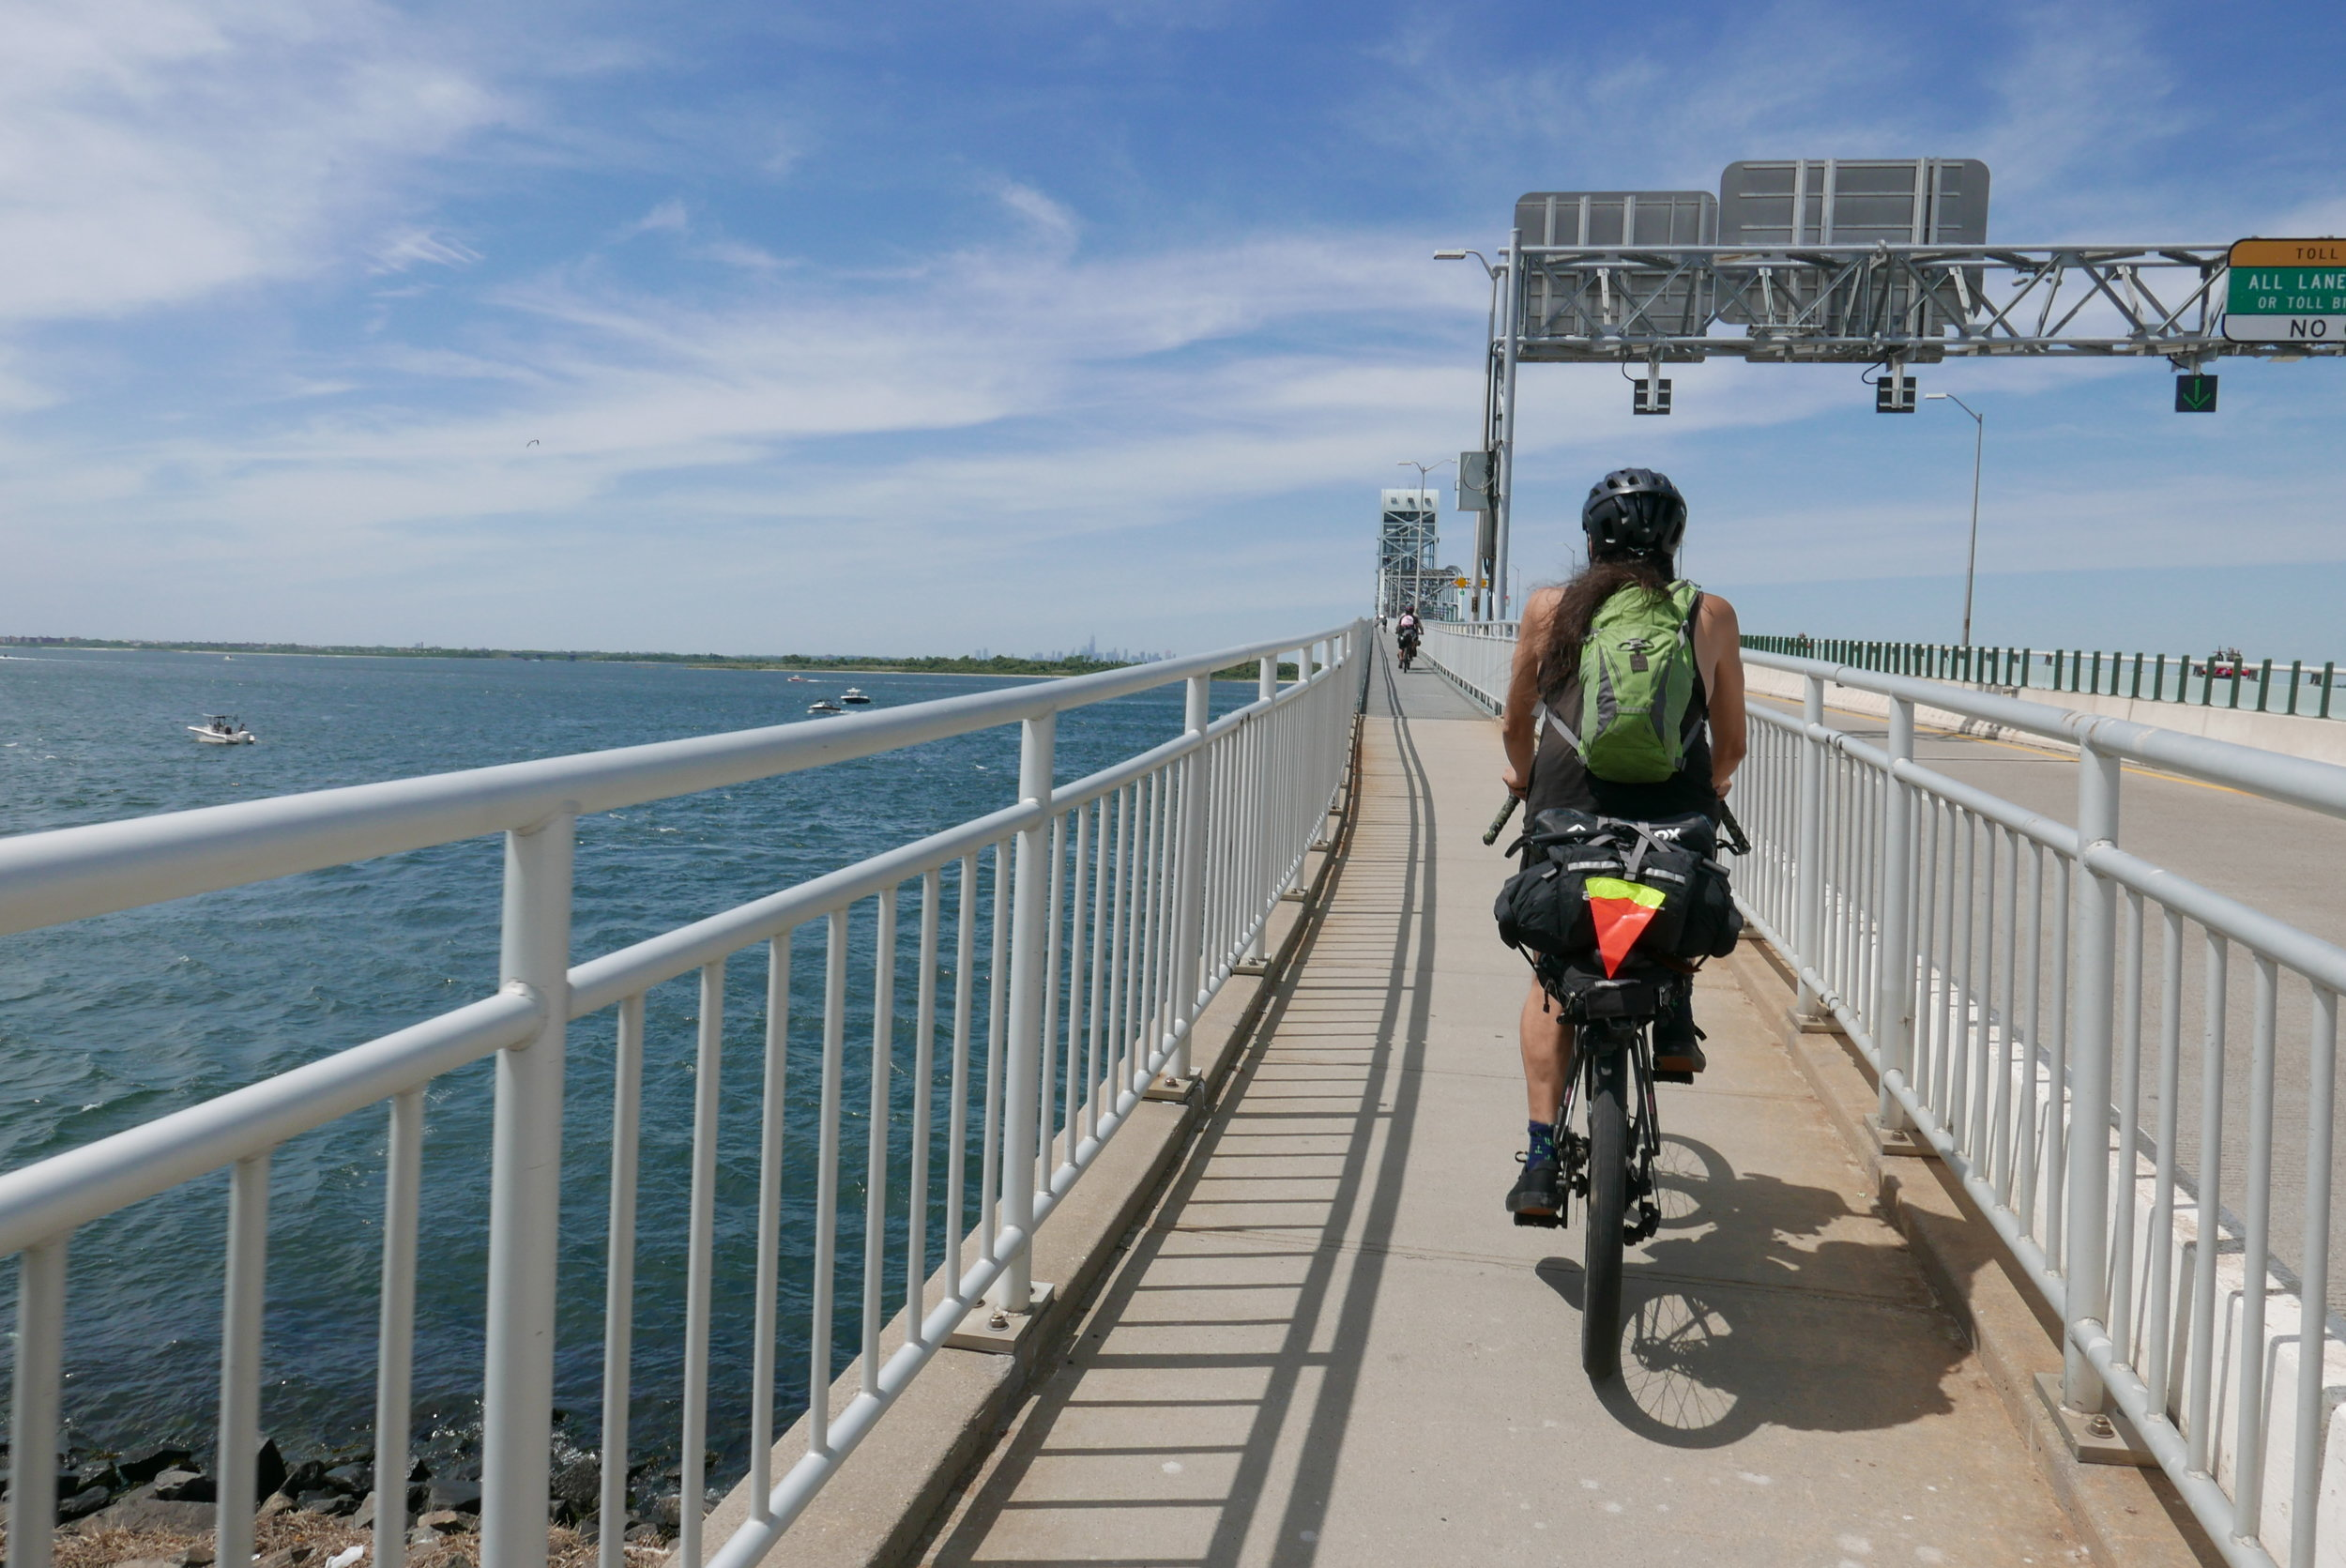 Up and over the Gil Hodges Bridge, looping back around north to Floyd Bennett Field